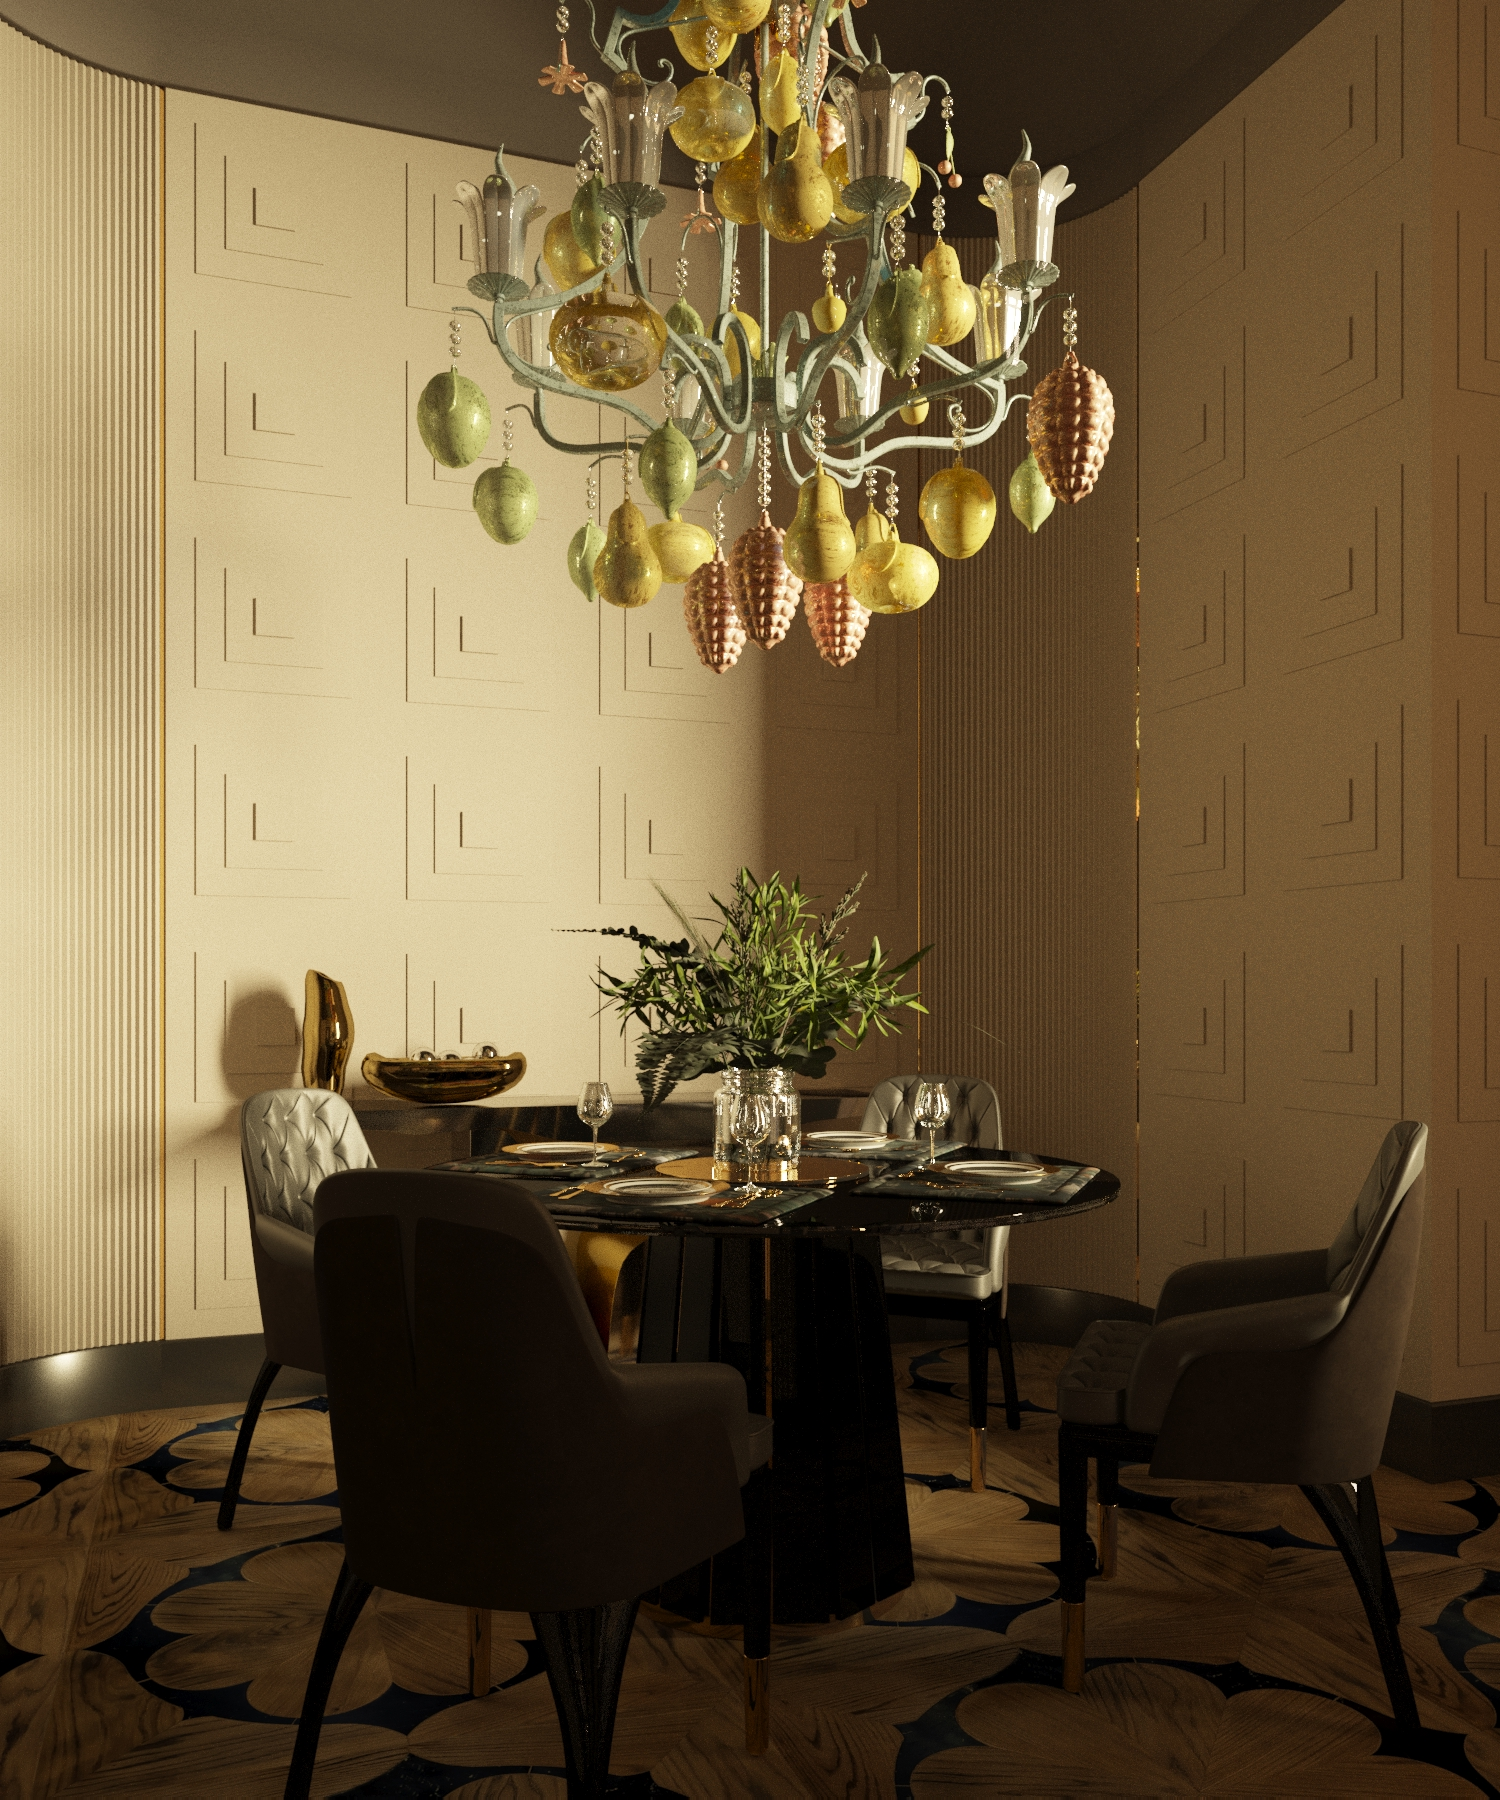 Interior Design Projects: Ksenia Schwarzmann color of the year for 2019 Pantone Has Released Their Color of The Year For 2019 Darian Table color of the year for 2019 Pantone Has Released Their Color of The Year For 2019 Darian Table